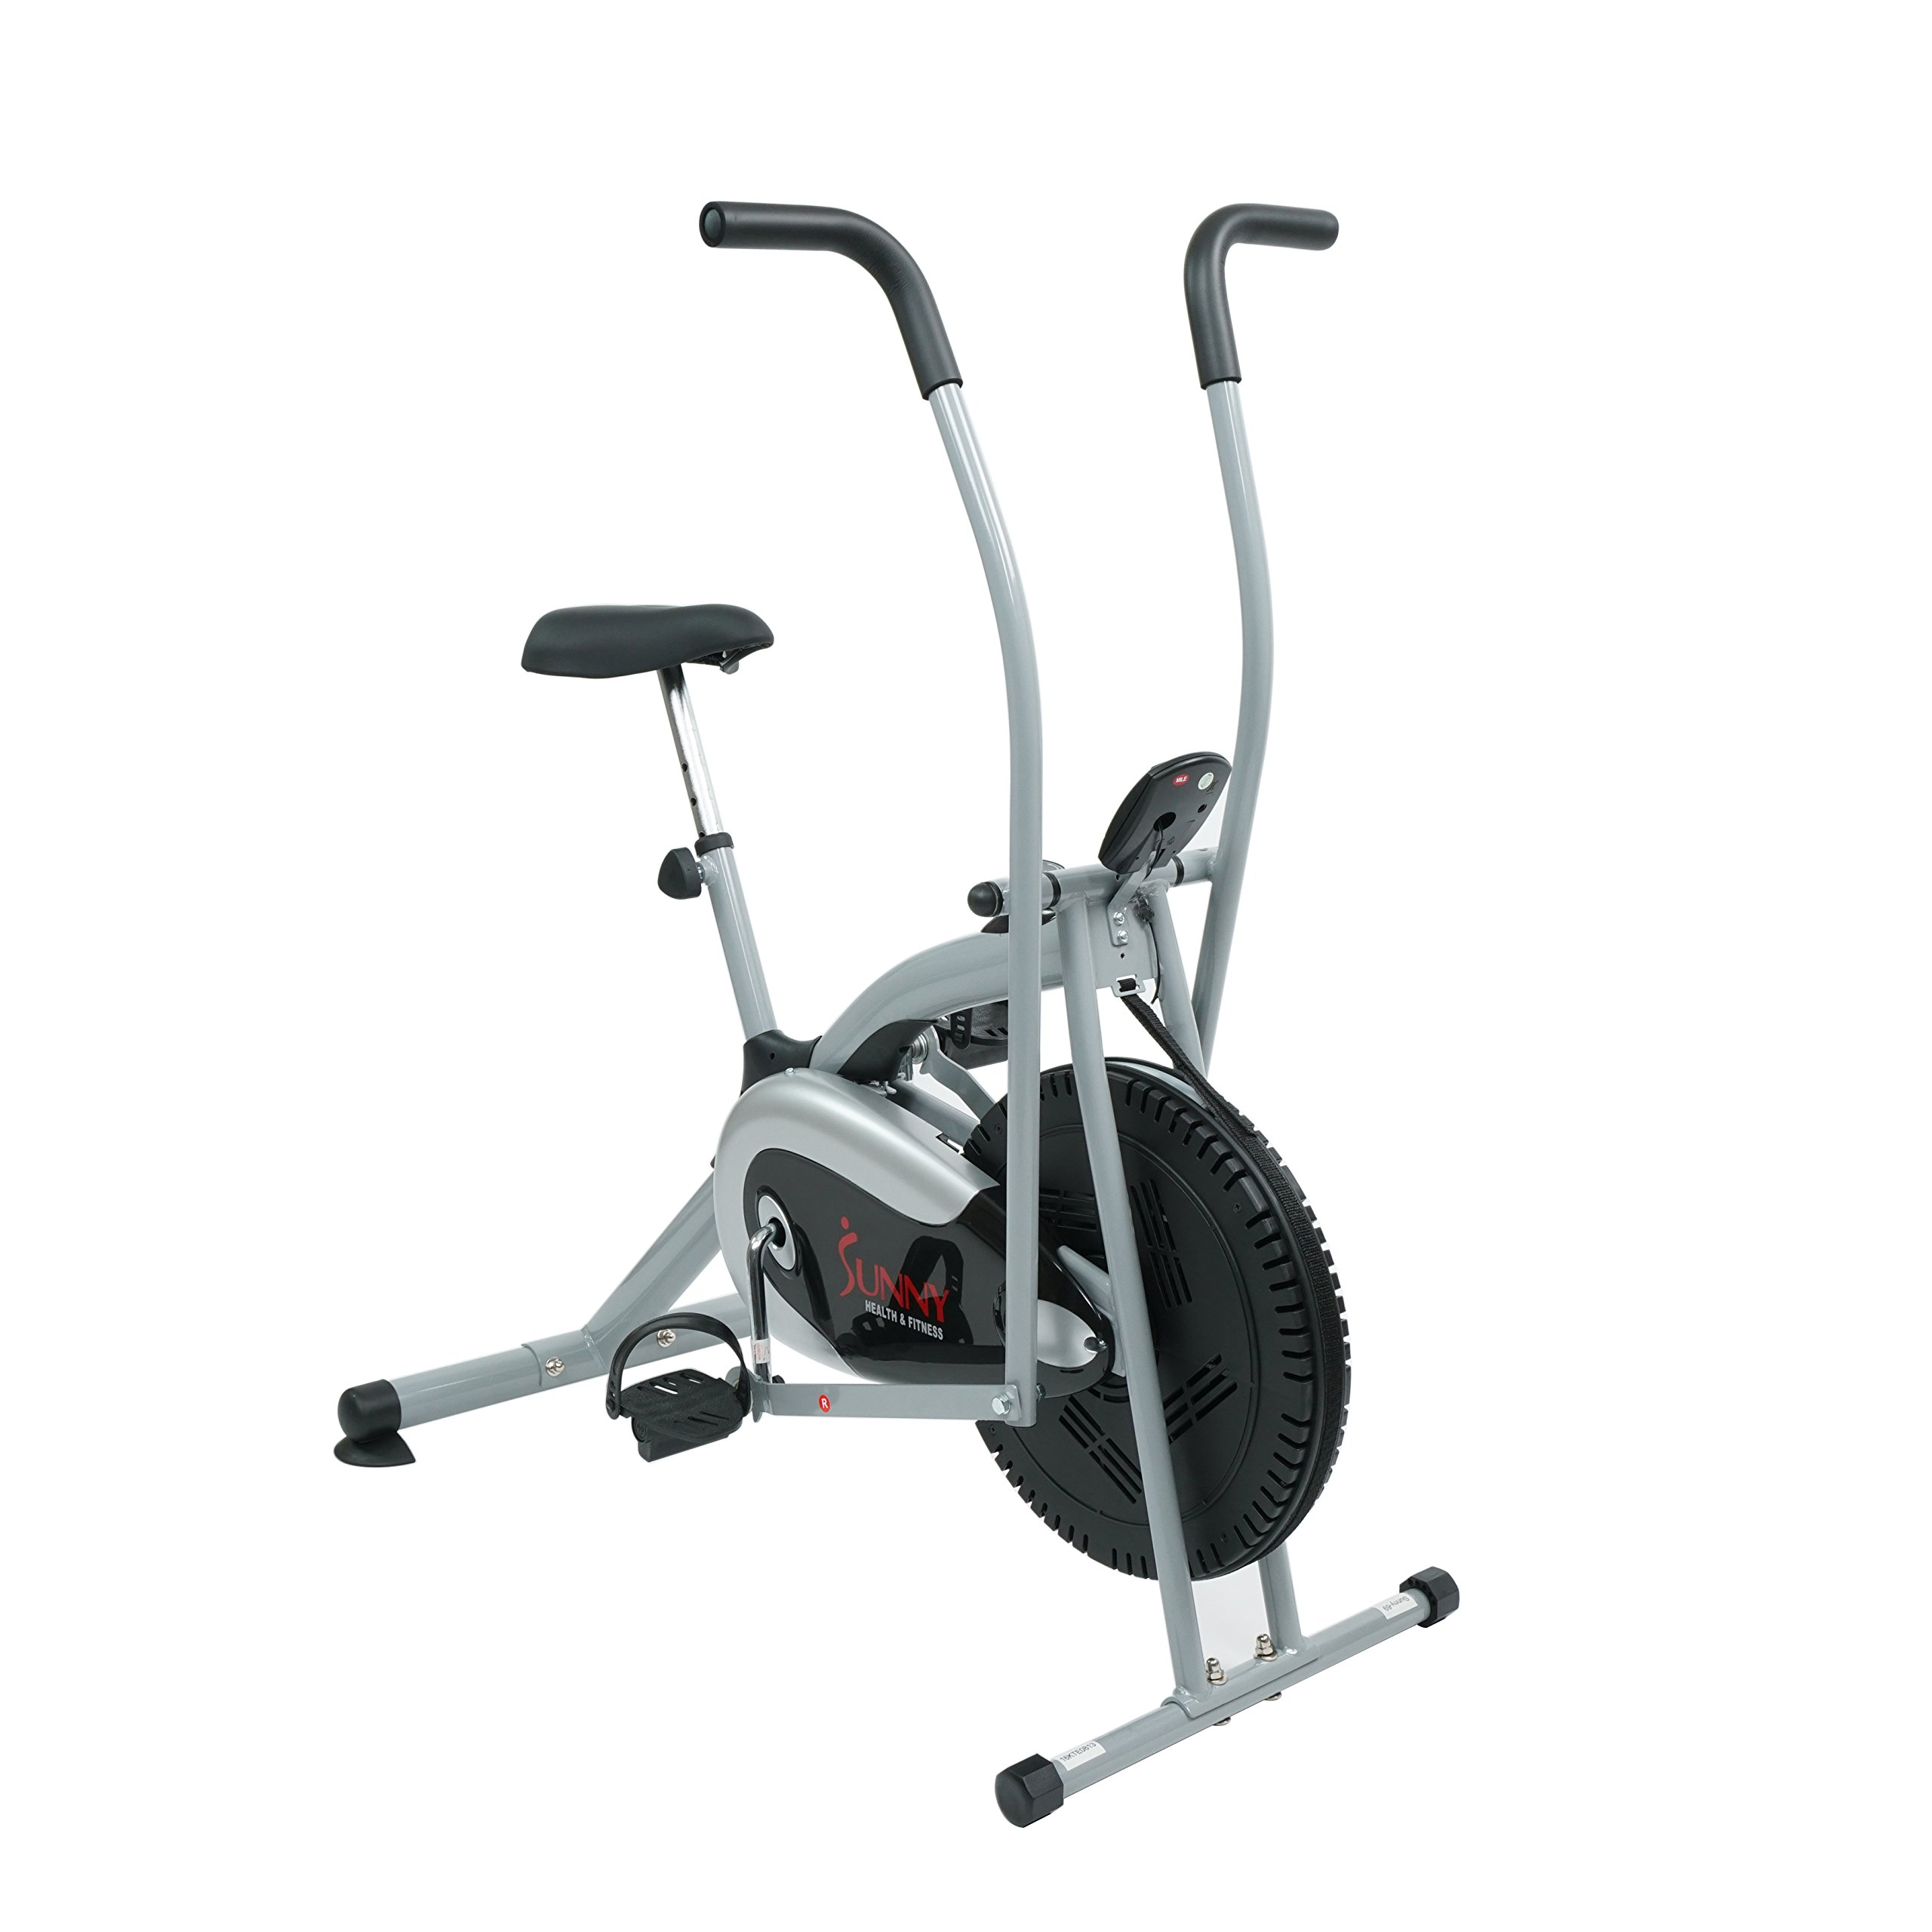 Sunny Health & Fitness SF-B2621 Cross Training Fan Upright Exercise Bike w/ Arm Exercisers by Sunny Health & Fitness (Image #2)